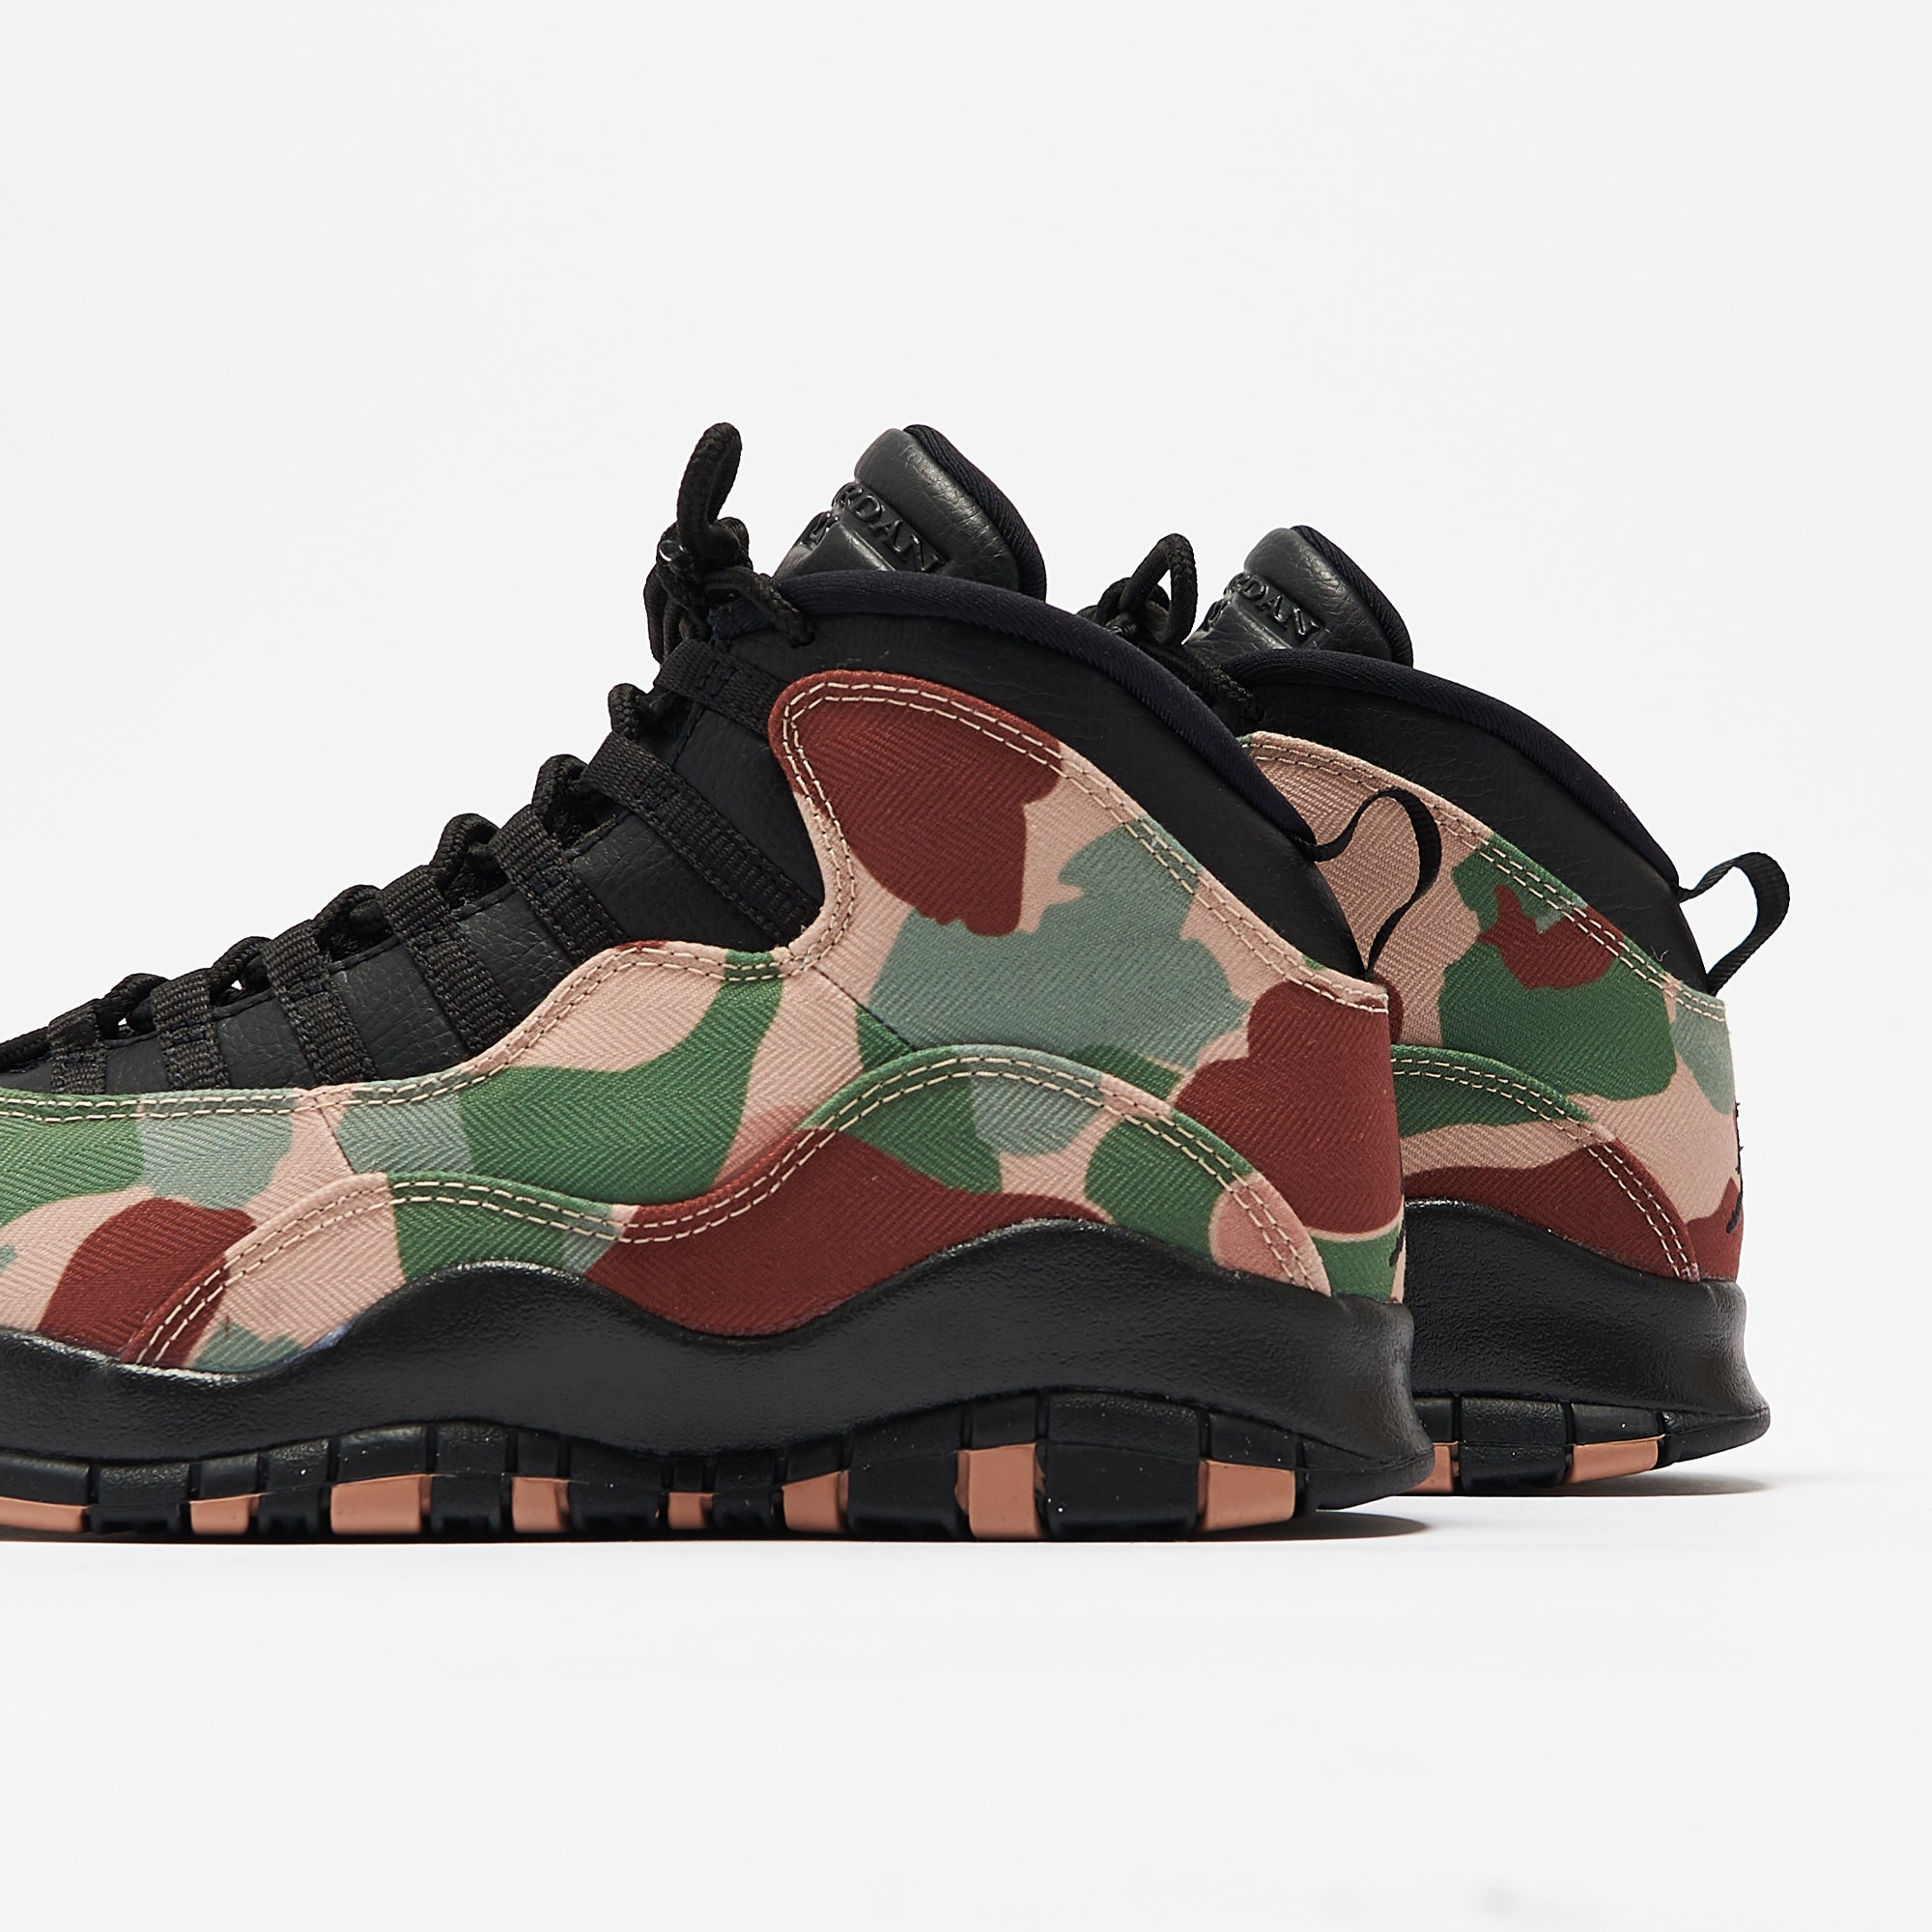 huge selection of 48a36 779d4 Nike Air Jordan 10 Retro - Rattan / Black / Dusted Clay – Kith